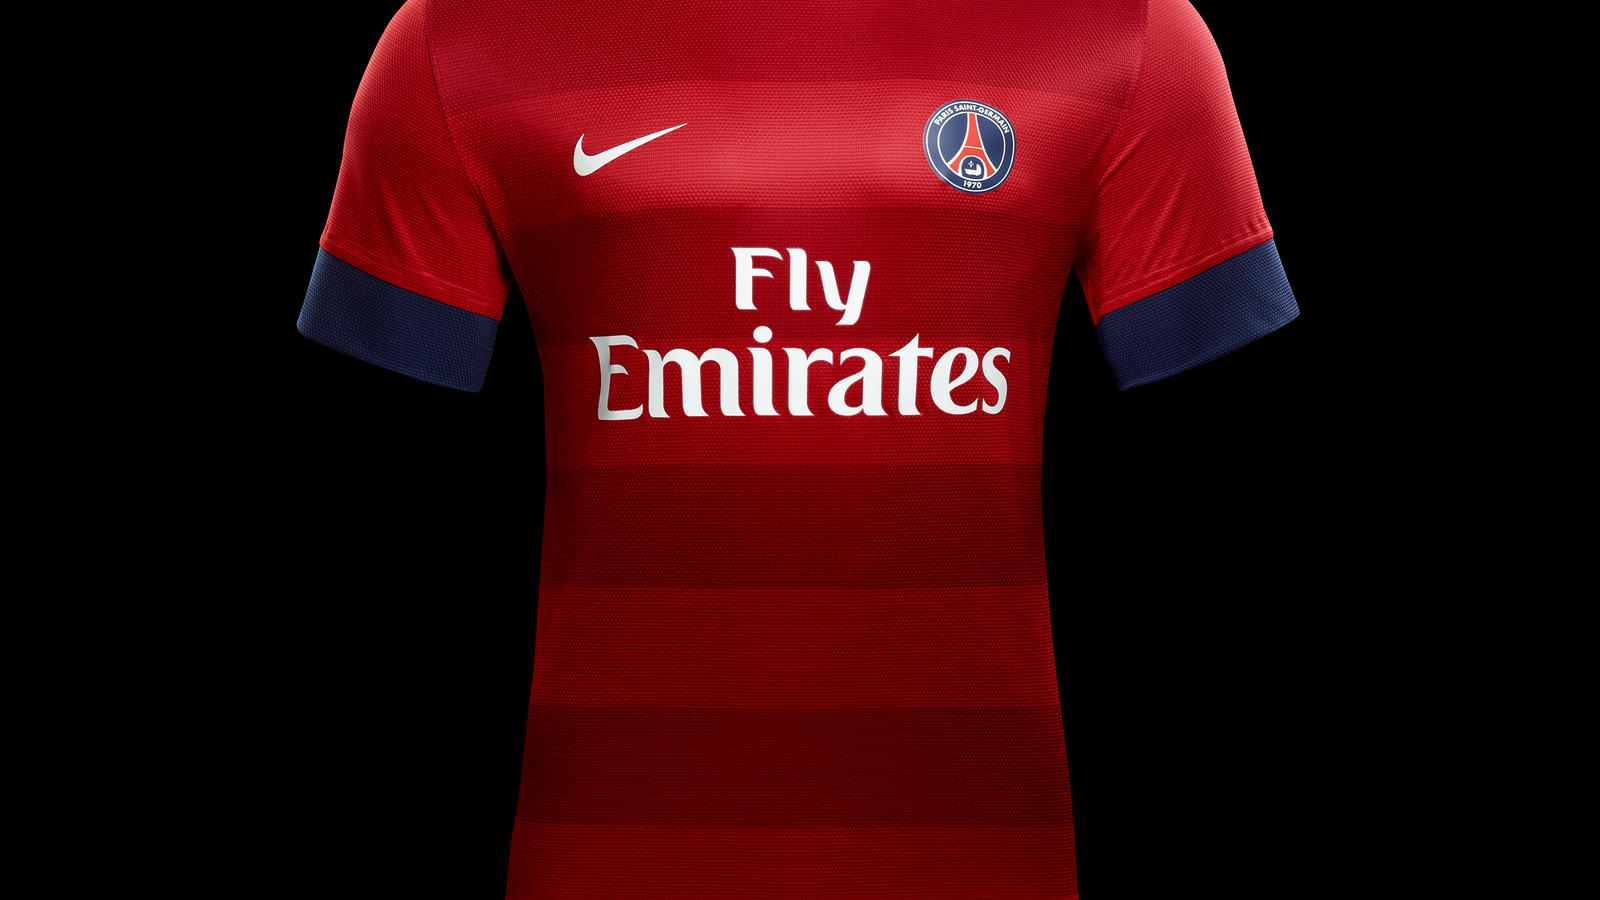 pretty nice 3d25c 7c2d6 Nike unveils Paris St-Germain away kit for season 2012-13 ...